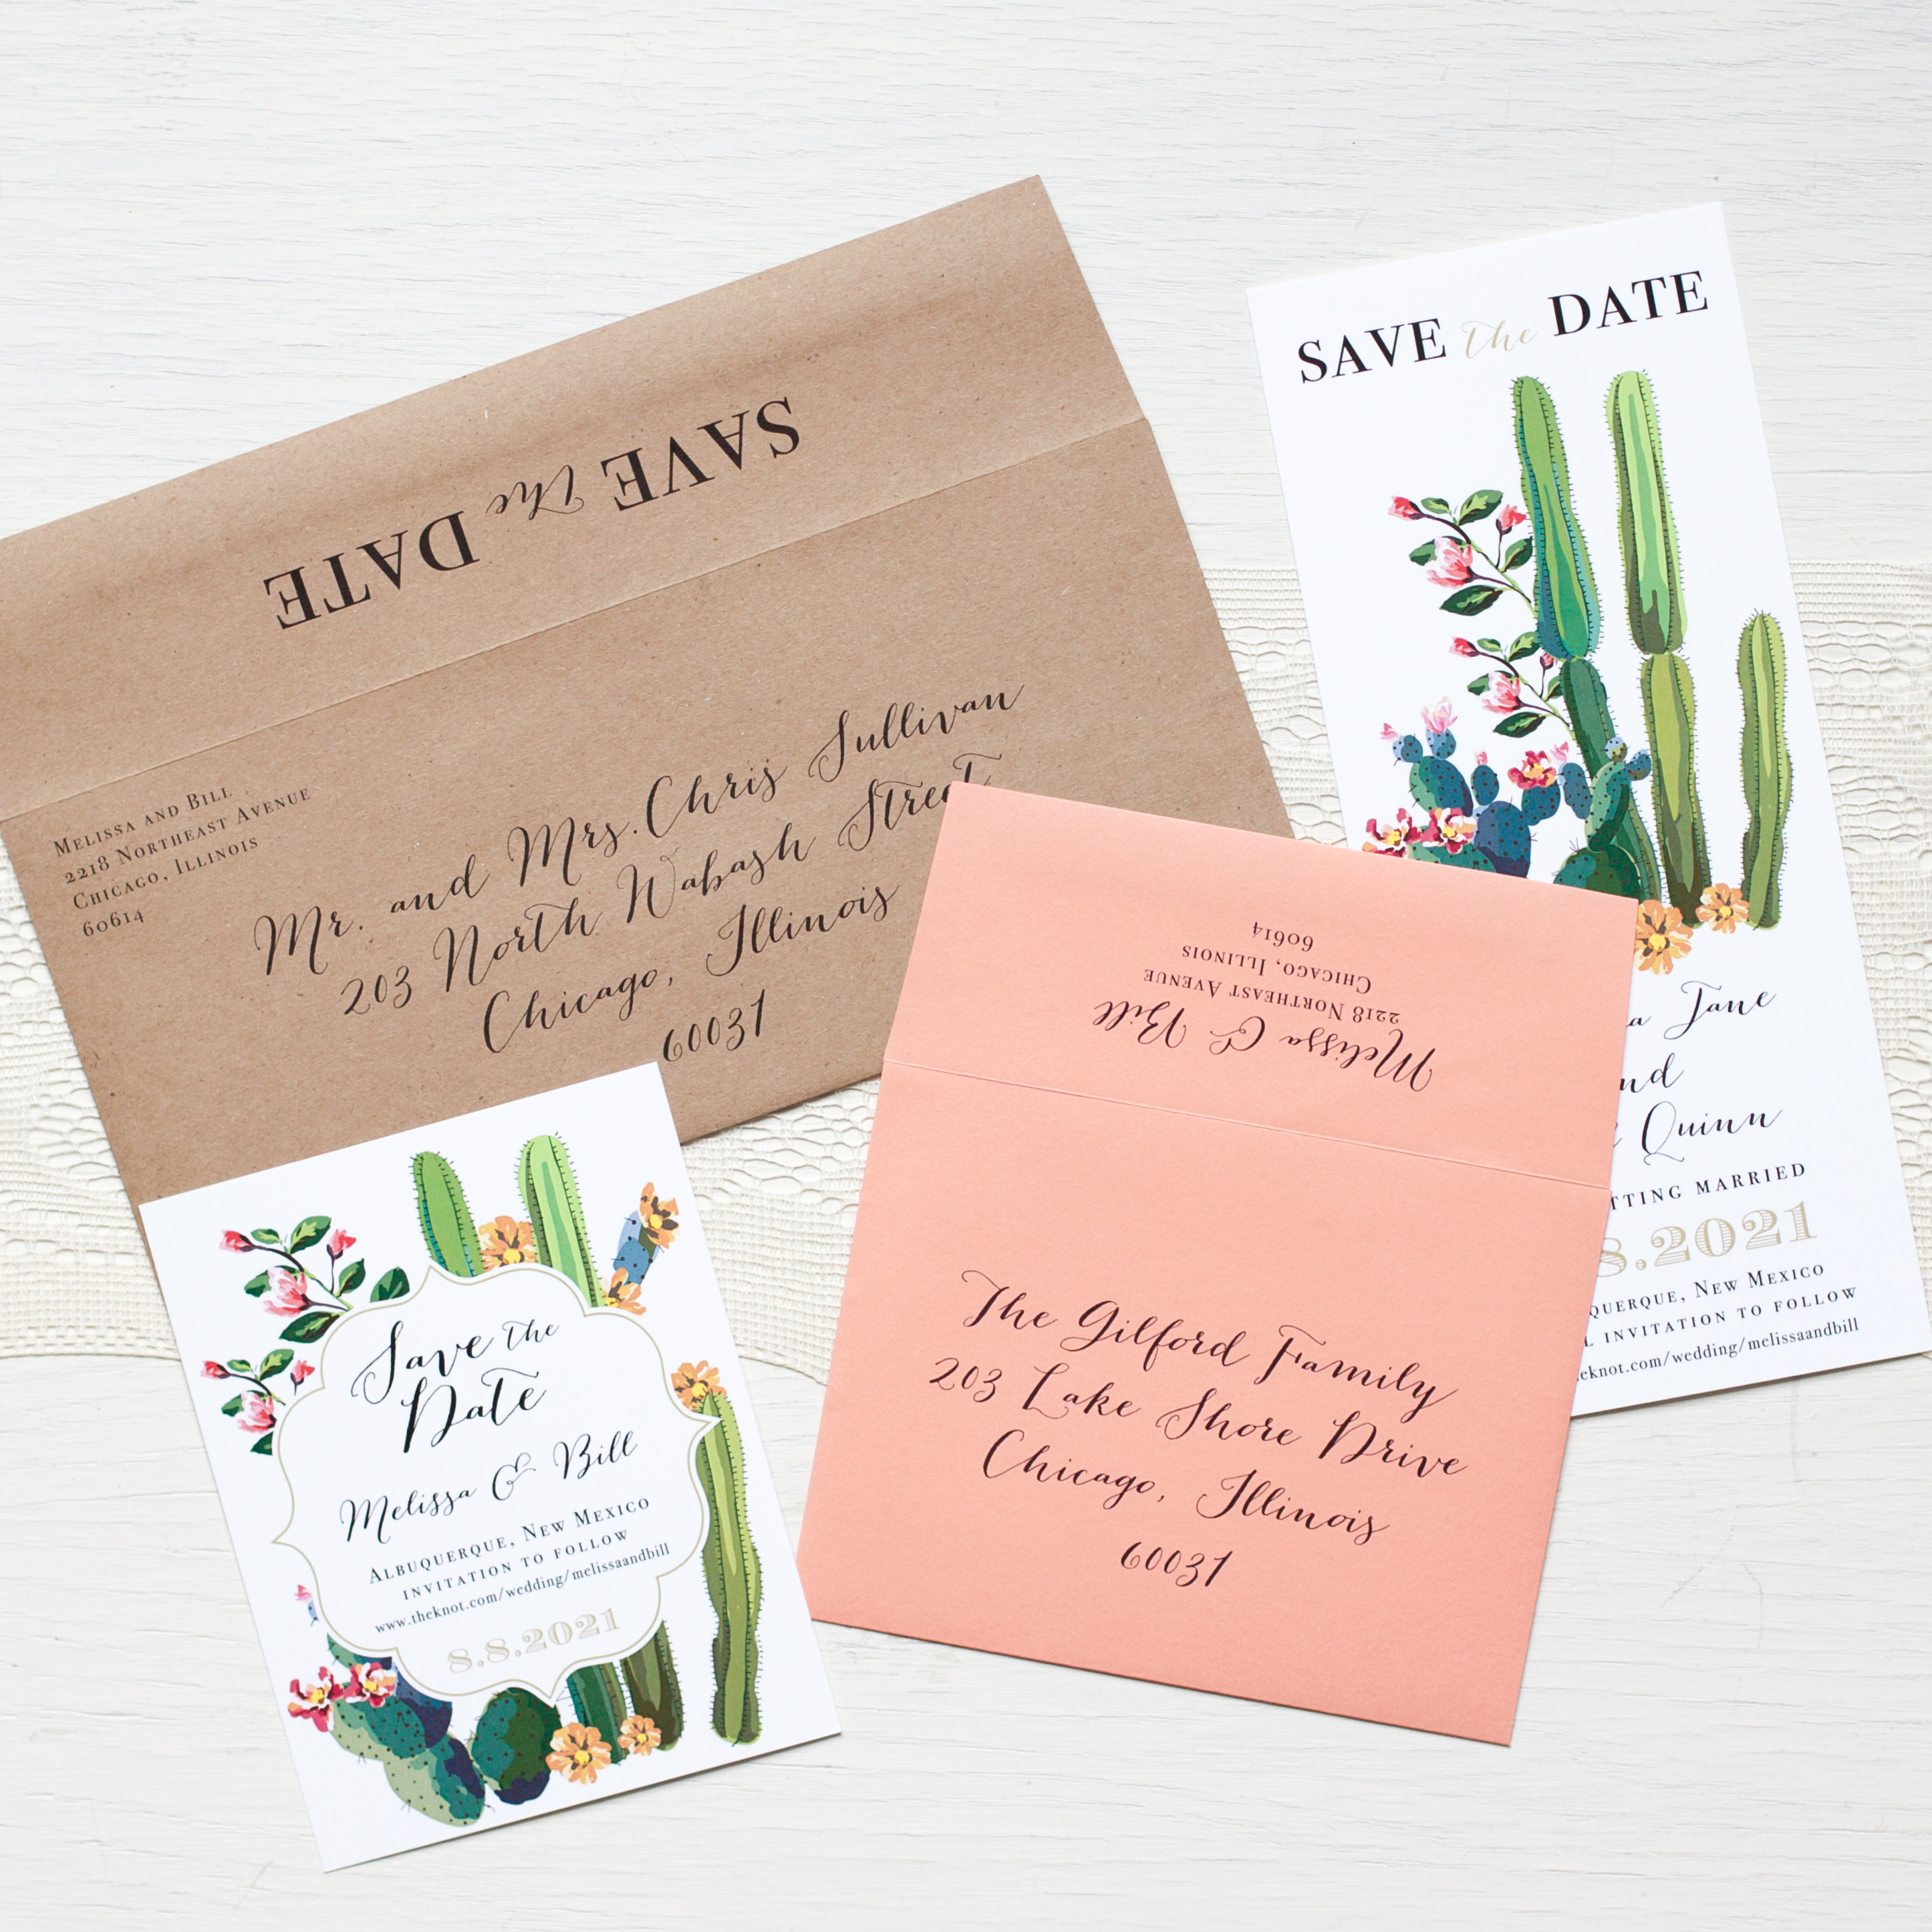 Best Weddings Cheap Save Dates Walmart Desert Love Save Dates By Beacon Undefined Desert Love Save Dates Beacon Lane Invitations Cheap Save Dates inspiration Cheap Save The Dates